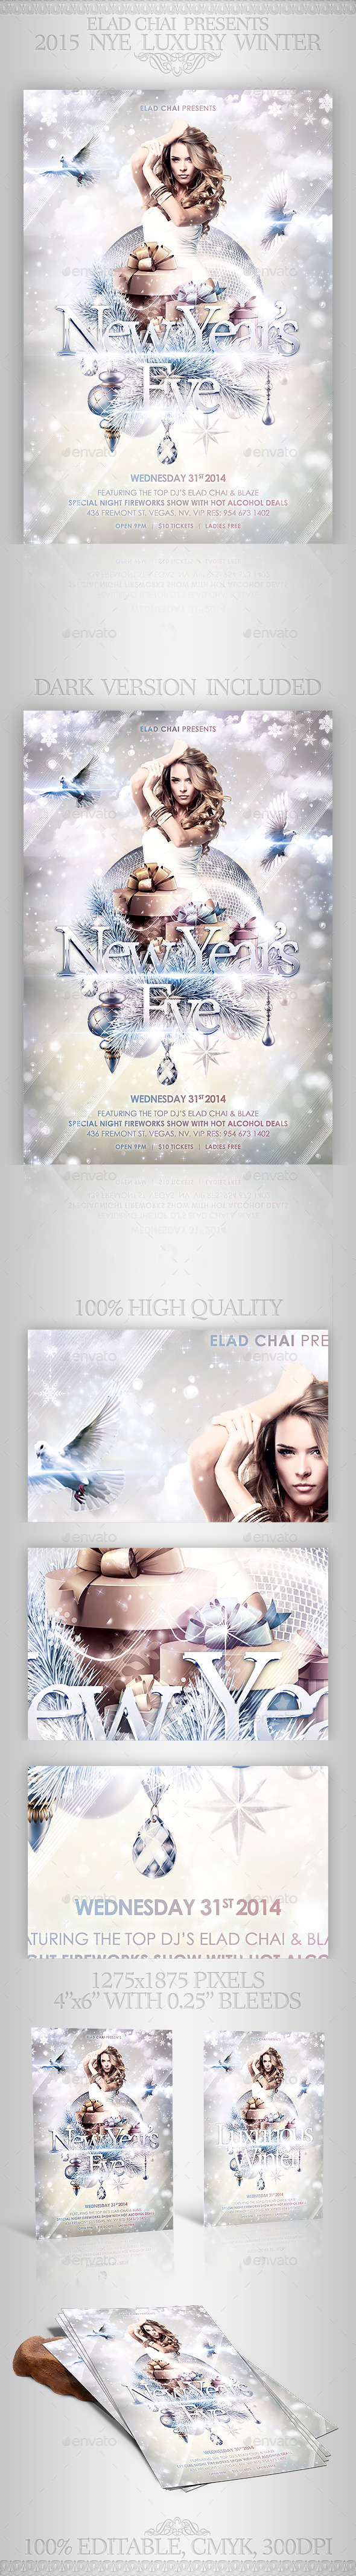 GraphicRiver 2015 NYE Luxury Winter Flyer Template 9649923